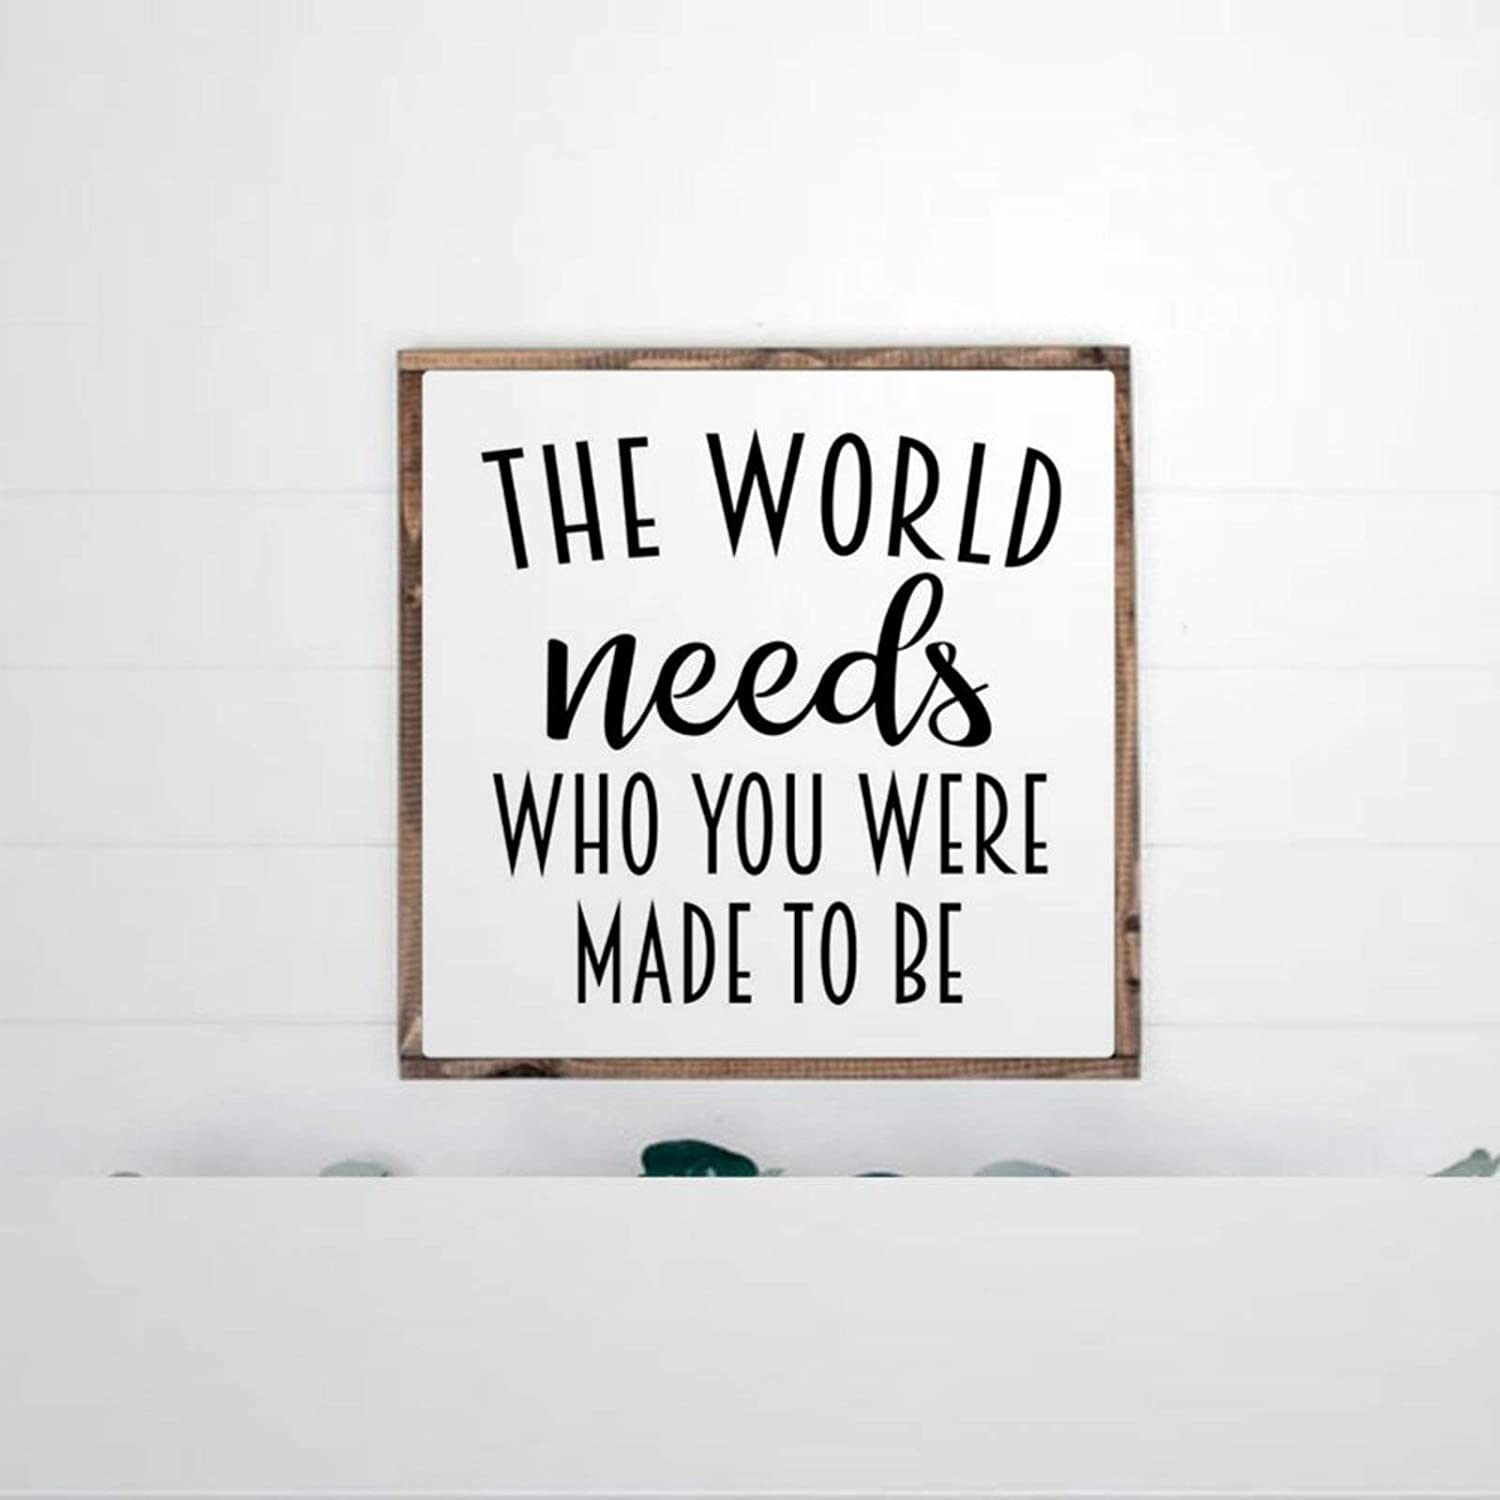 DONL9BAUER Framed Wooden Sign The World Needs Who were Made to Be Wall Hanging Inspirational Farmhouse Home Decor Wall Art for Living Room